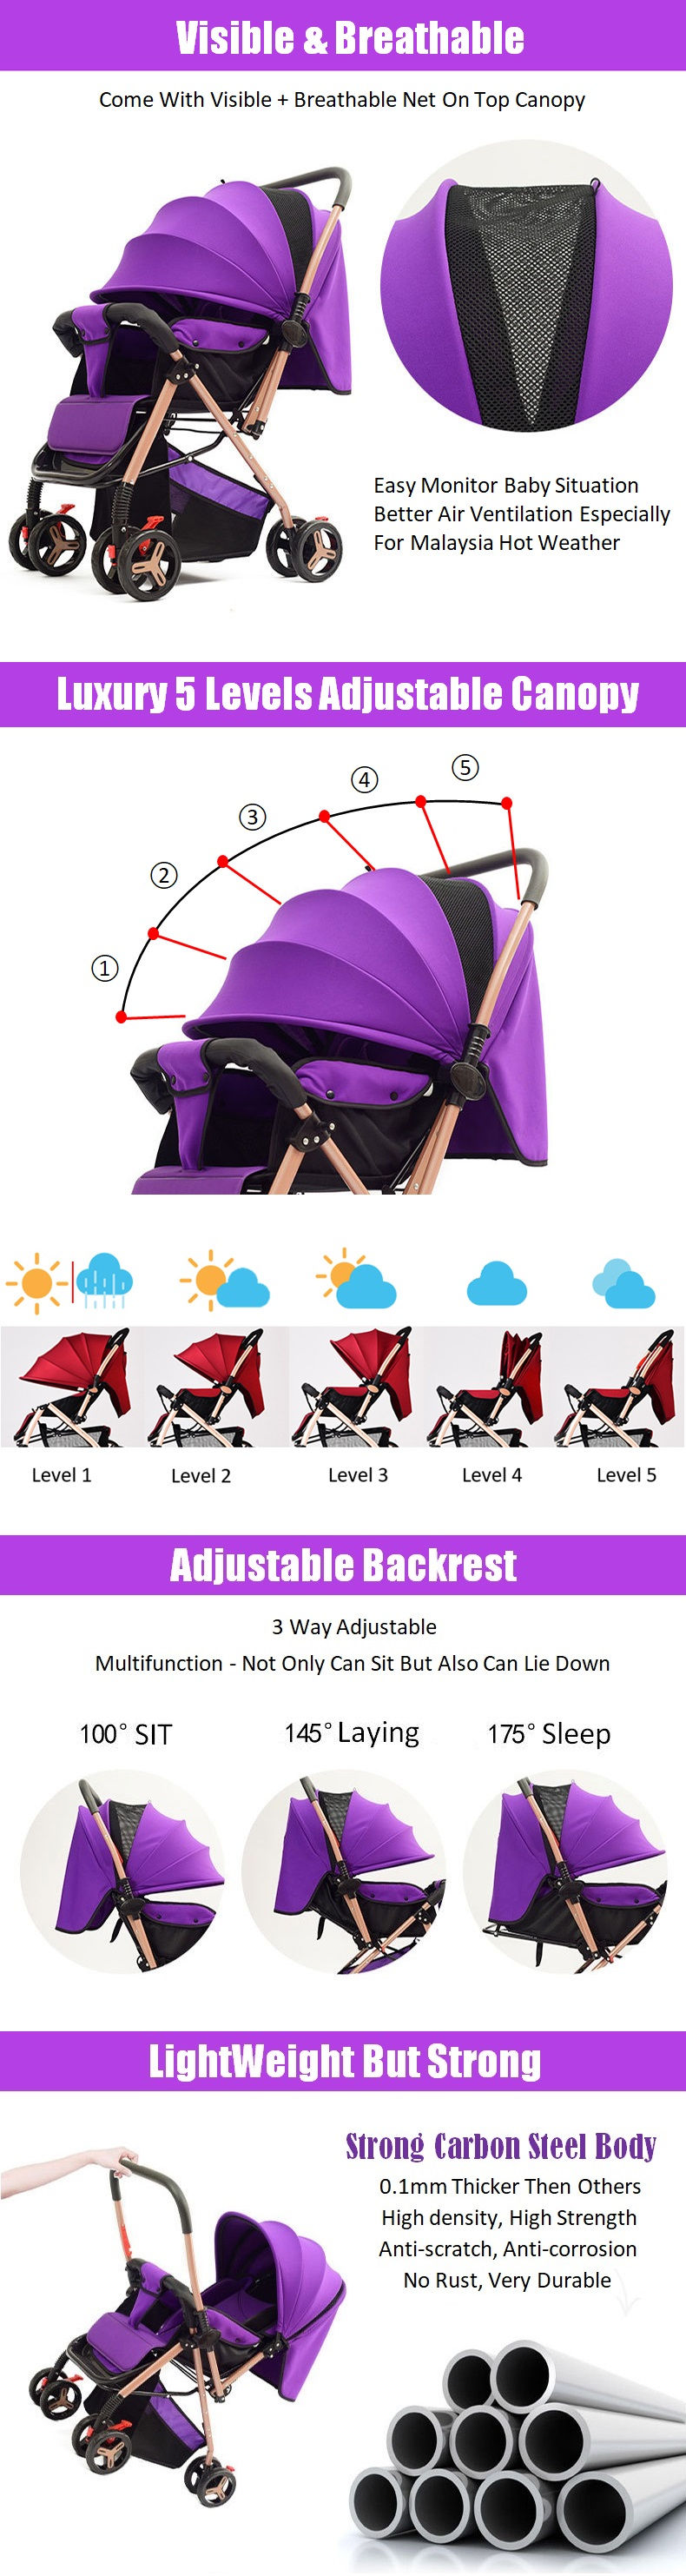 Multifunctional 2 Two Way Facing Lightweight Baby Stroller Folding with 8X Wheels + Adjustable Backrest + Canopy + Front Suspension + Free 4 Gift